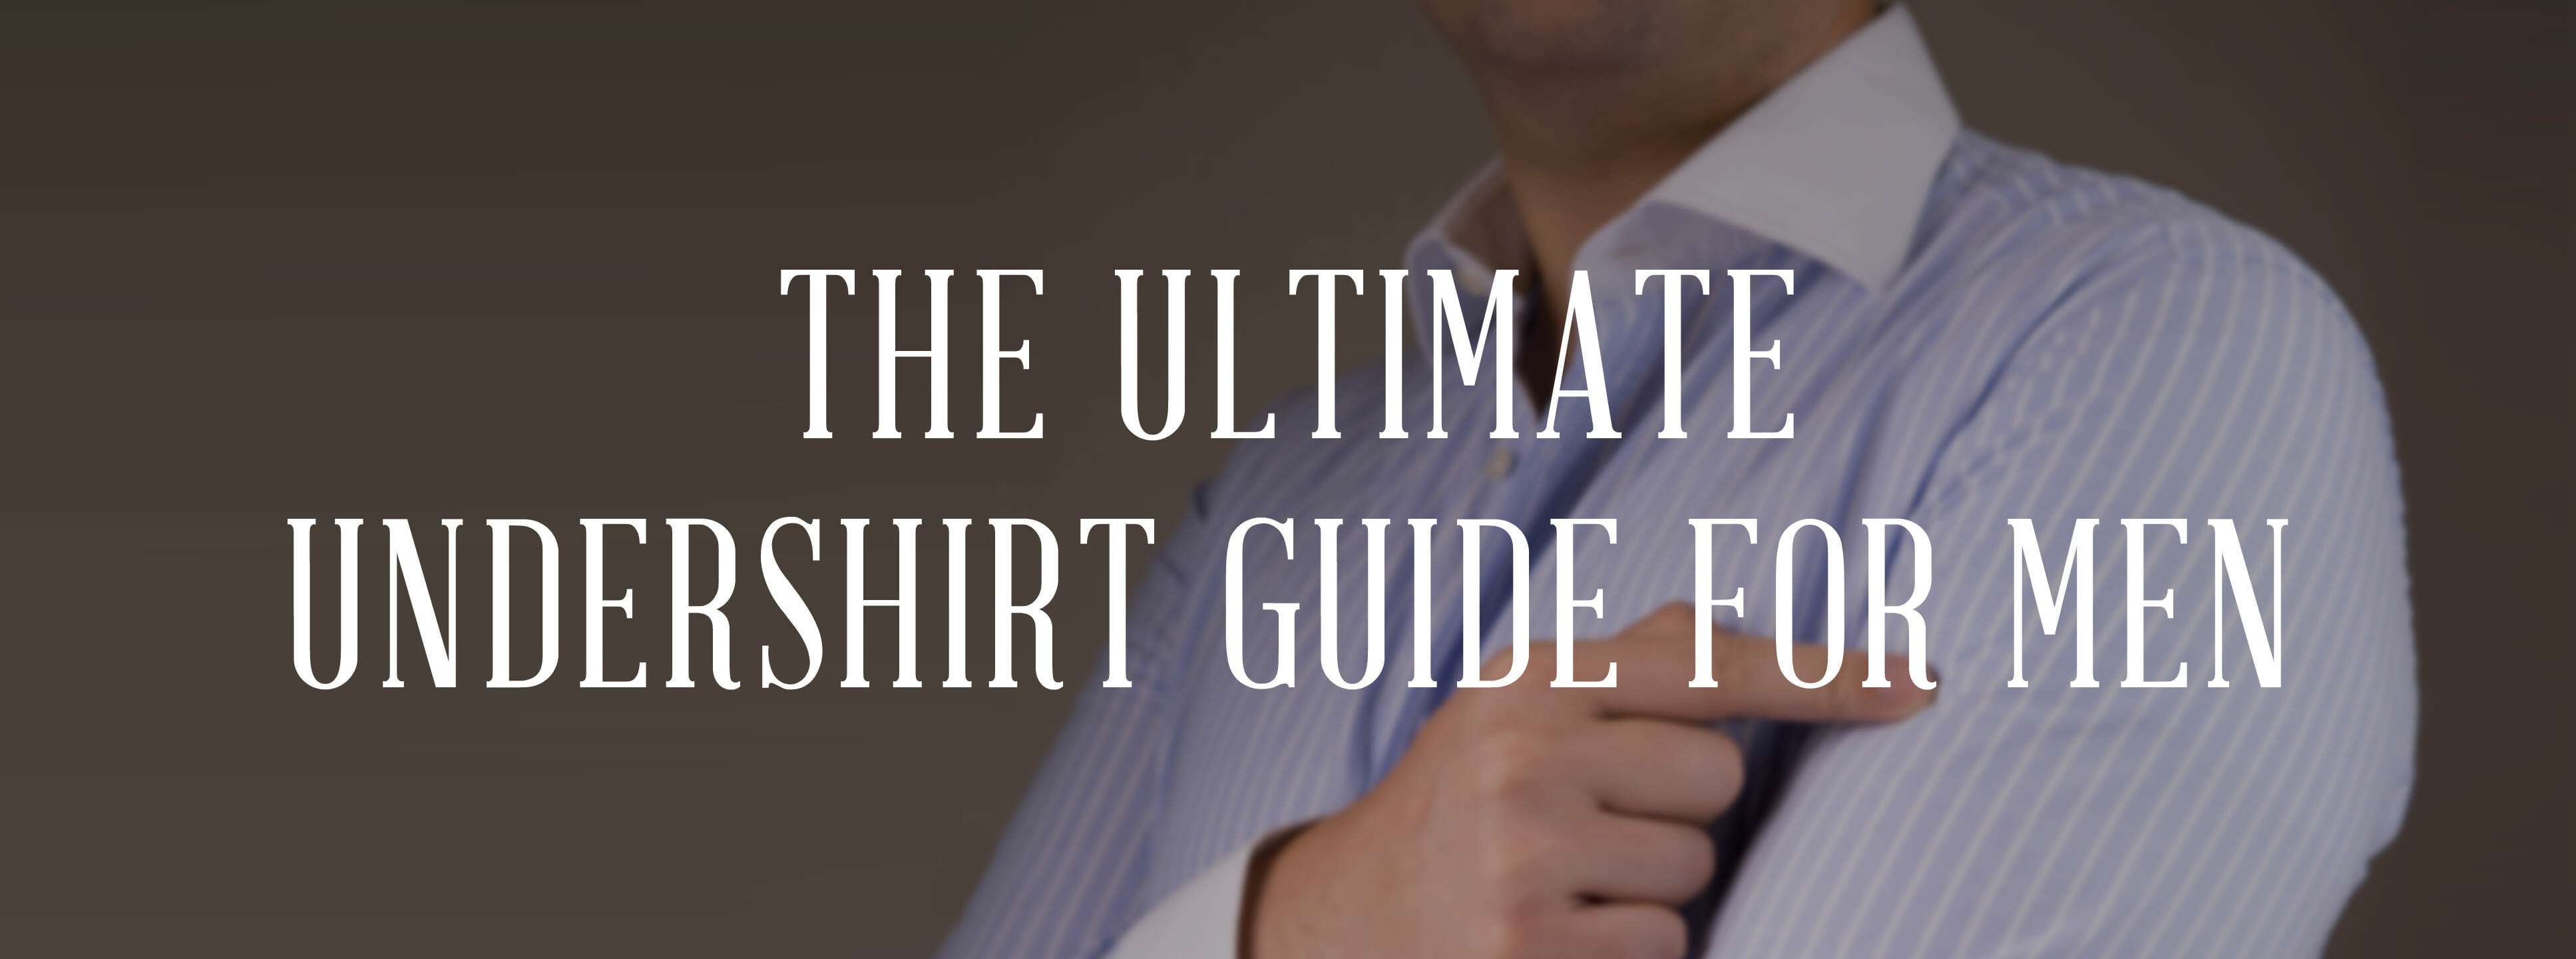 2df0d486b67c Undershirts For Men - To Wear or Not to Wear an Undershirt ...